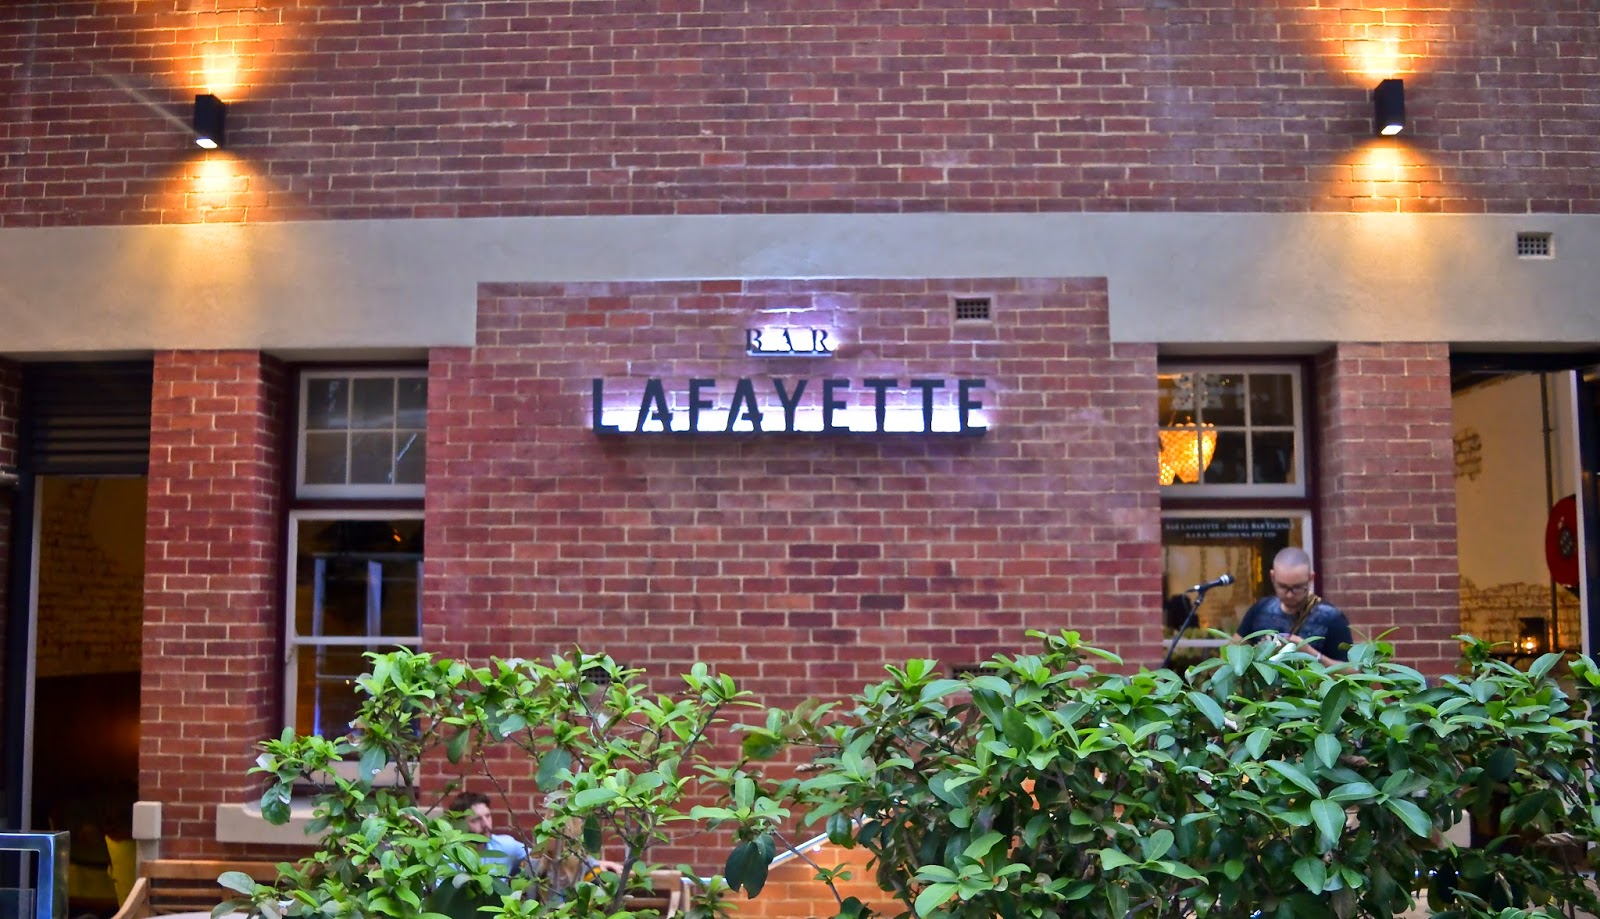 The food enthusiasts bar lafayette perth cbd for Food bar perth